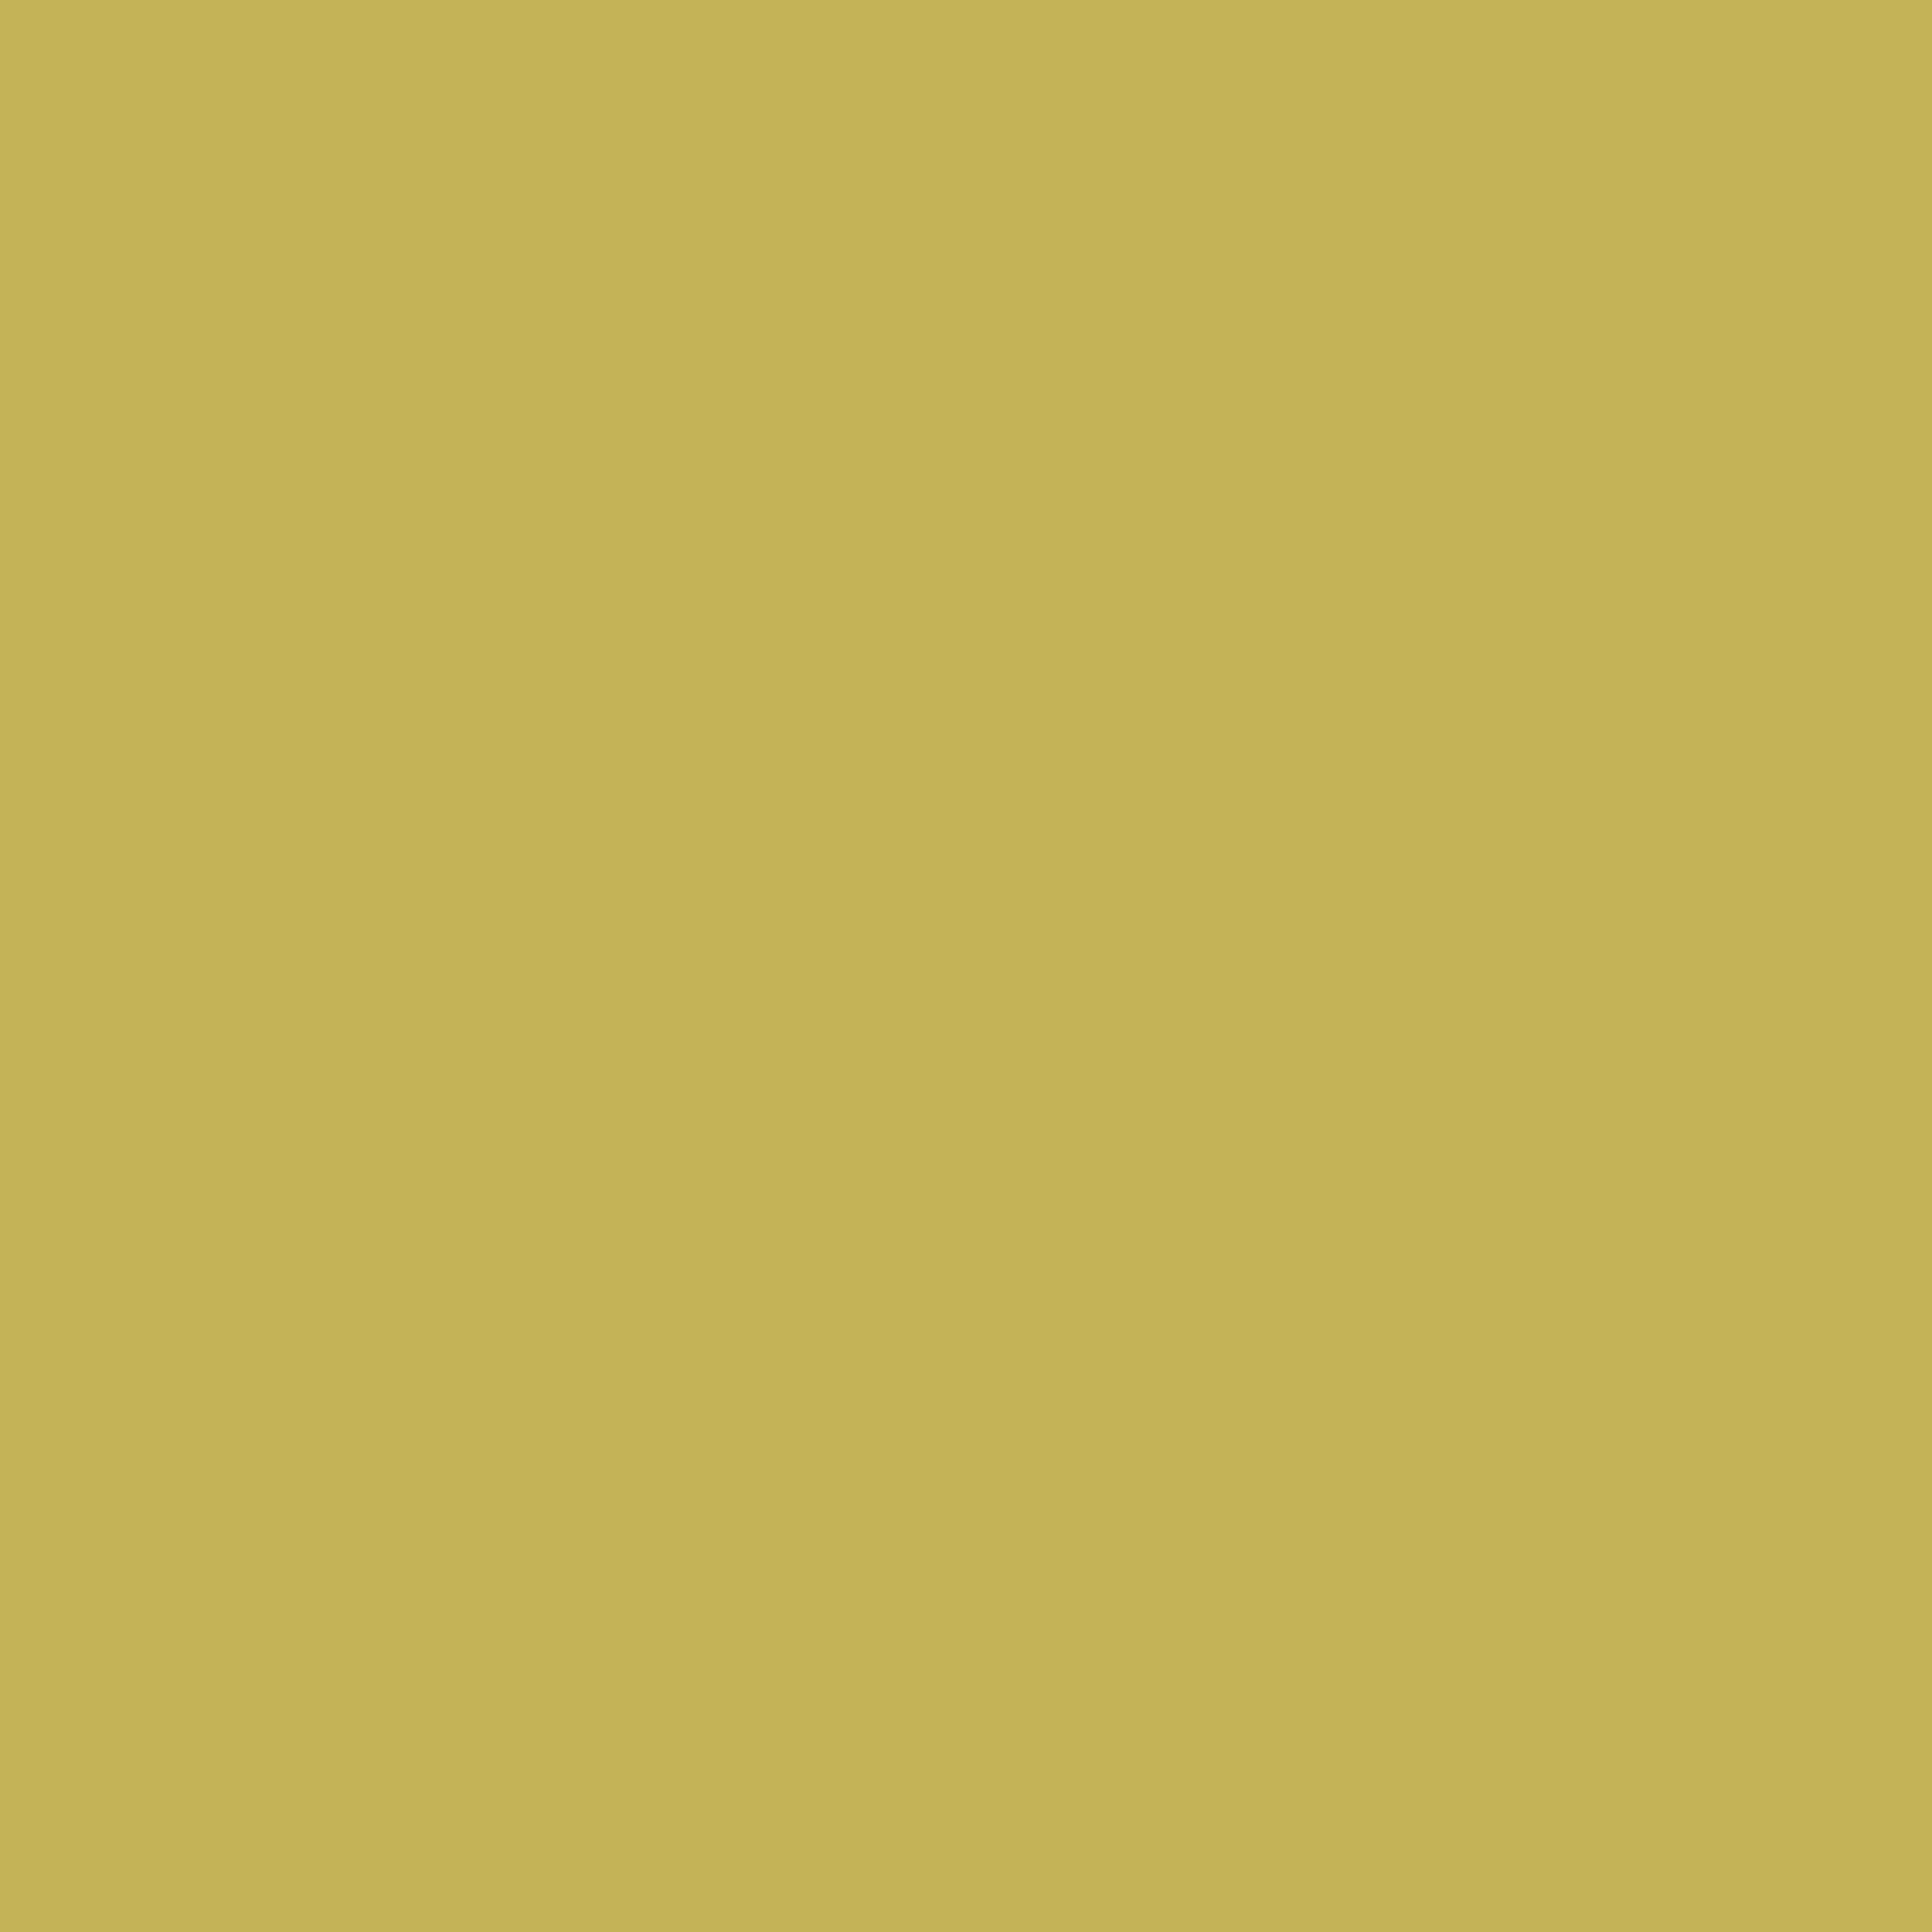 2048x2048 Vegas Gold Solid Color Background